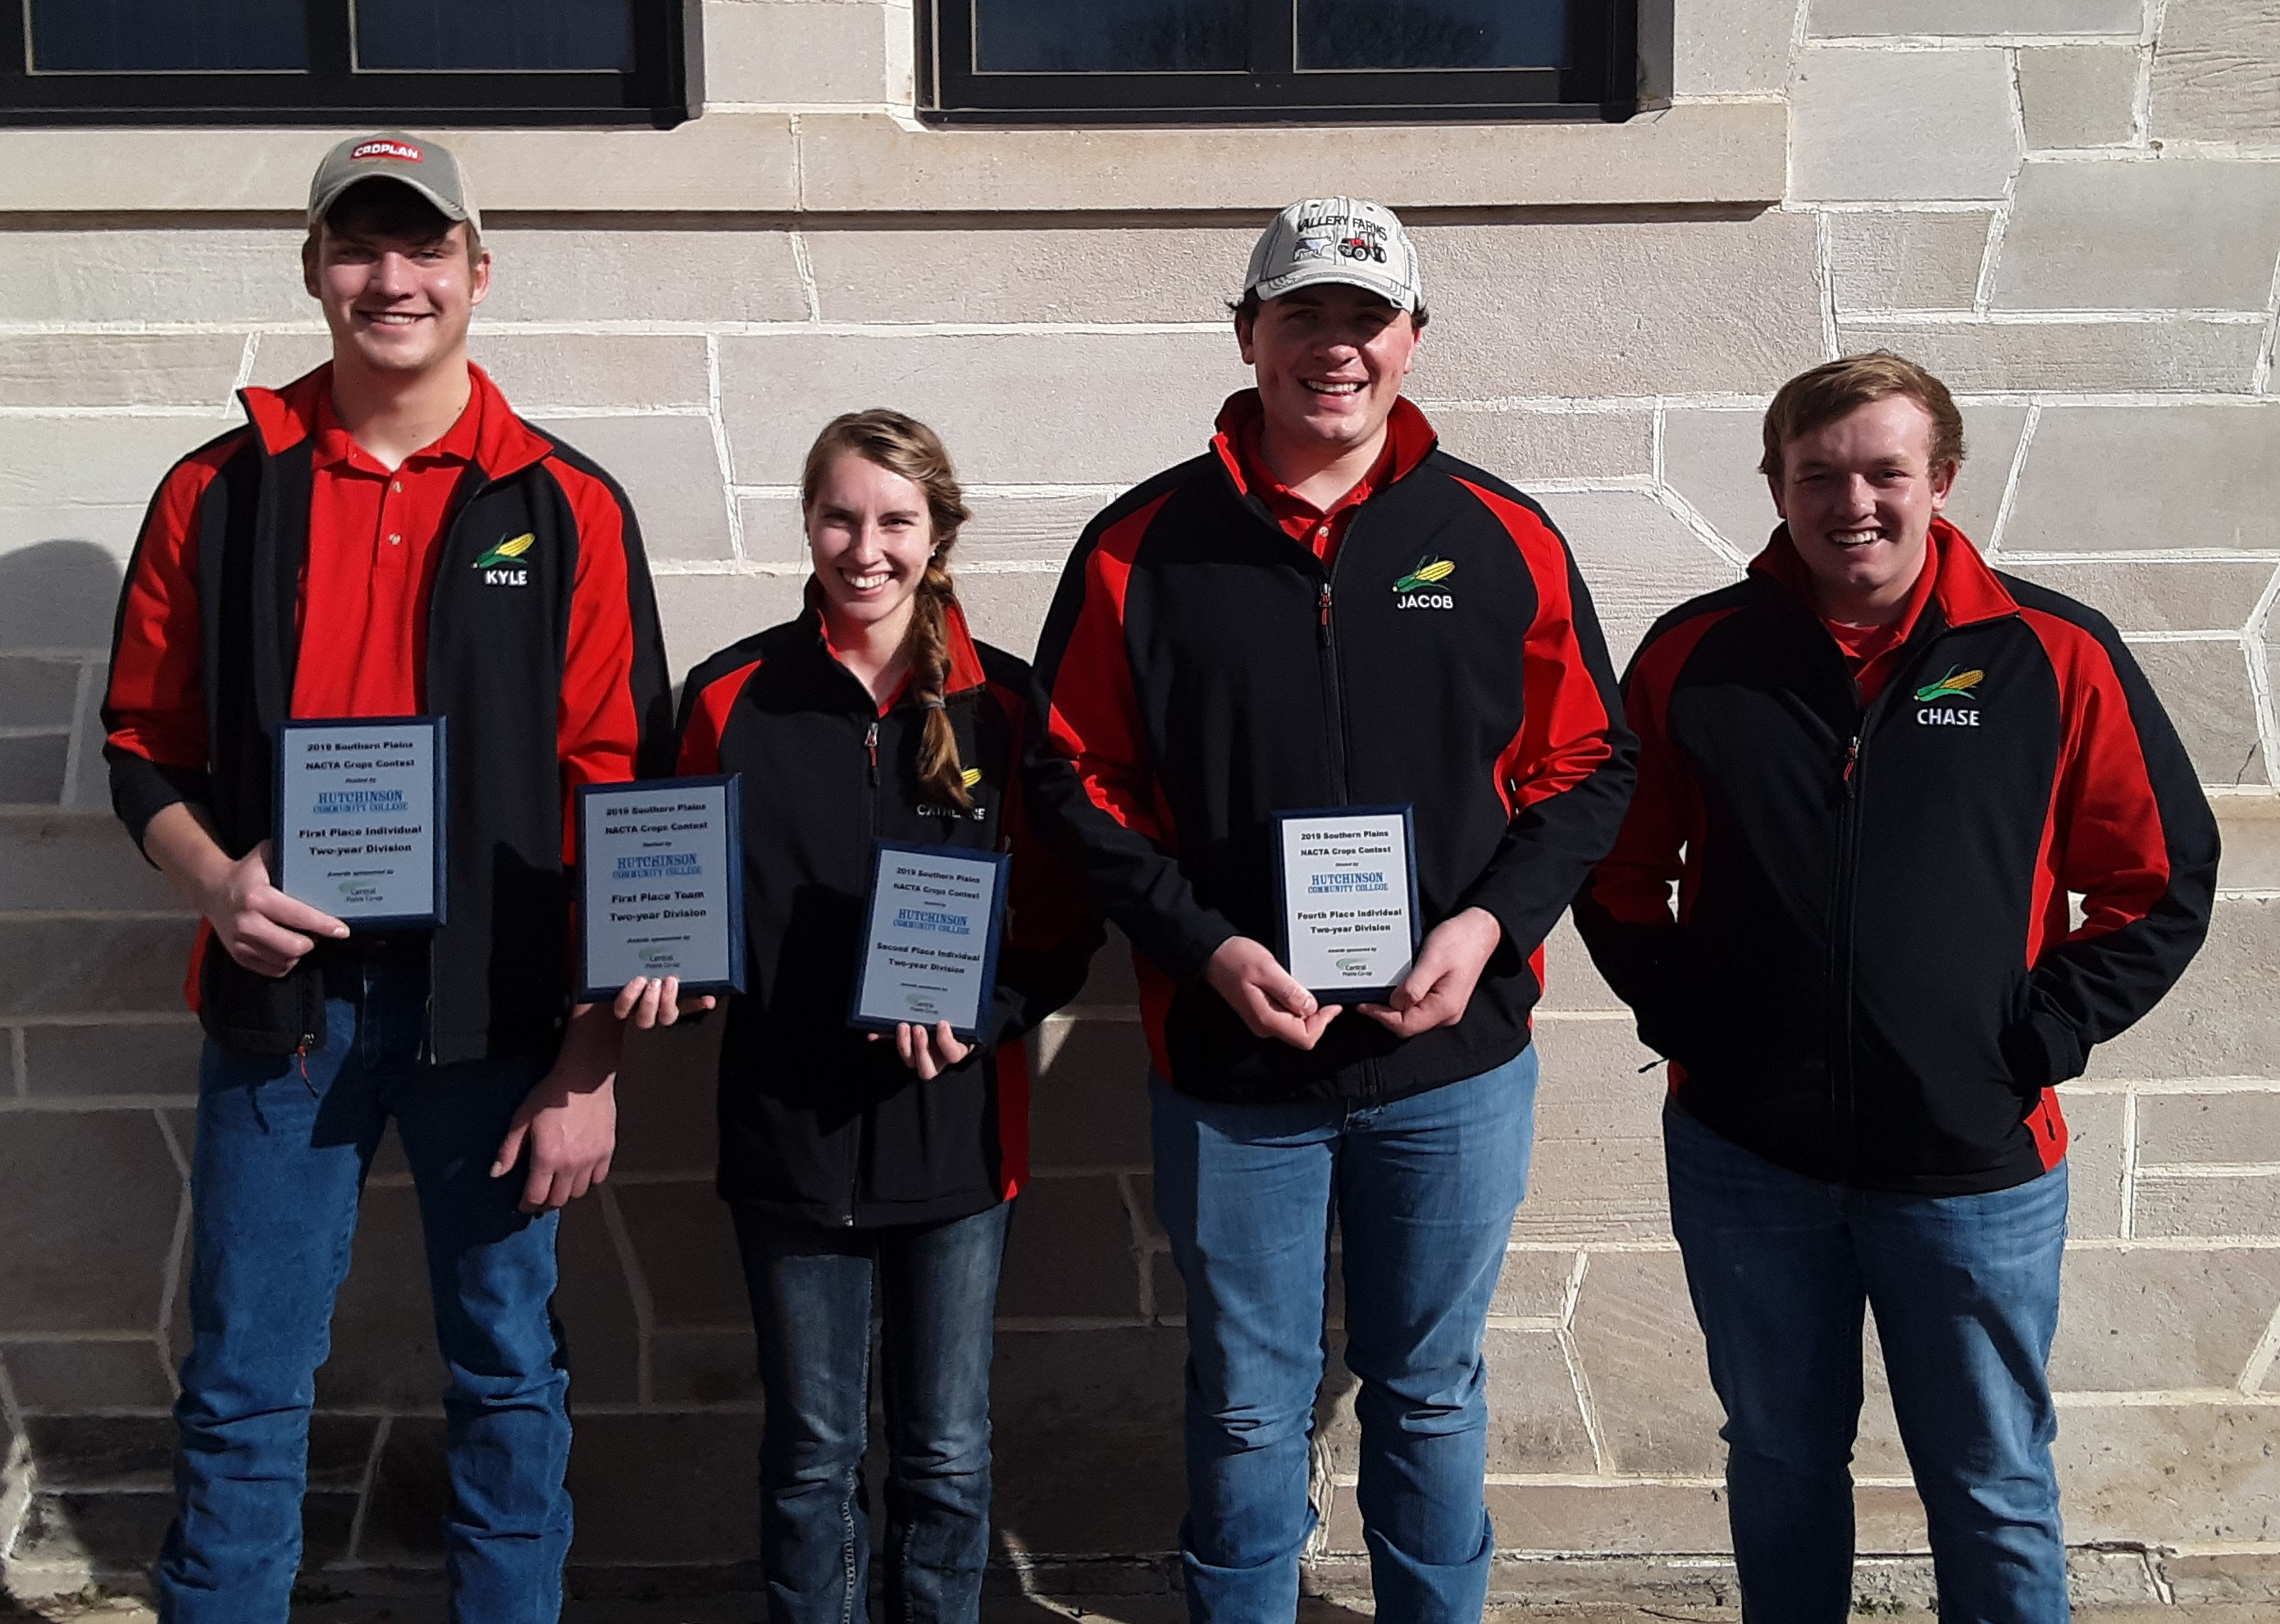 The NCTA Aggie Crops Judging Team took top honors Saturday in a contest among 2-year colleges. The team won first place and individual members ranked in the top seven placings. (From left) 1st place, Kyle Krantz, Alliance; 2nd, Catherine Lundggren, rural Hamilton County (Harvard); 4th, Jacob Vallery, Plattsmouth; and 7th, Chase Callahan, Gothenburg. (Ramsdale / NCTA Photo)